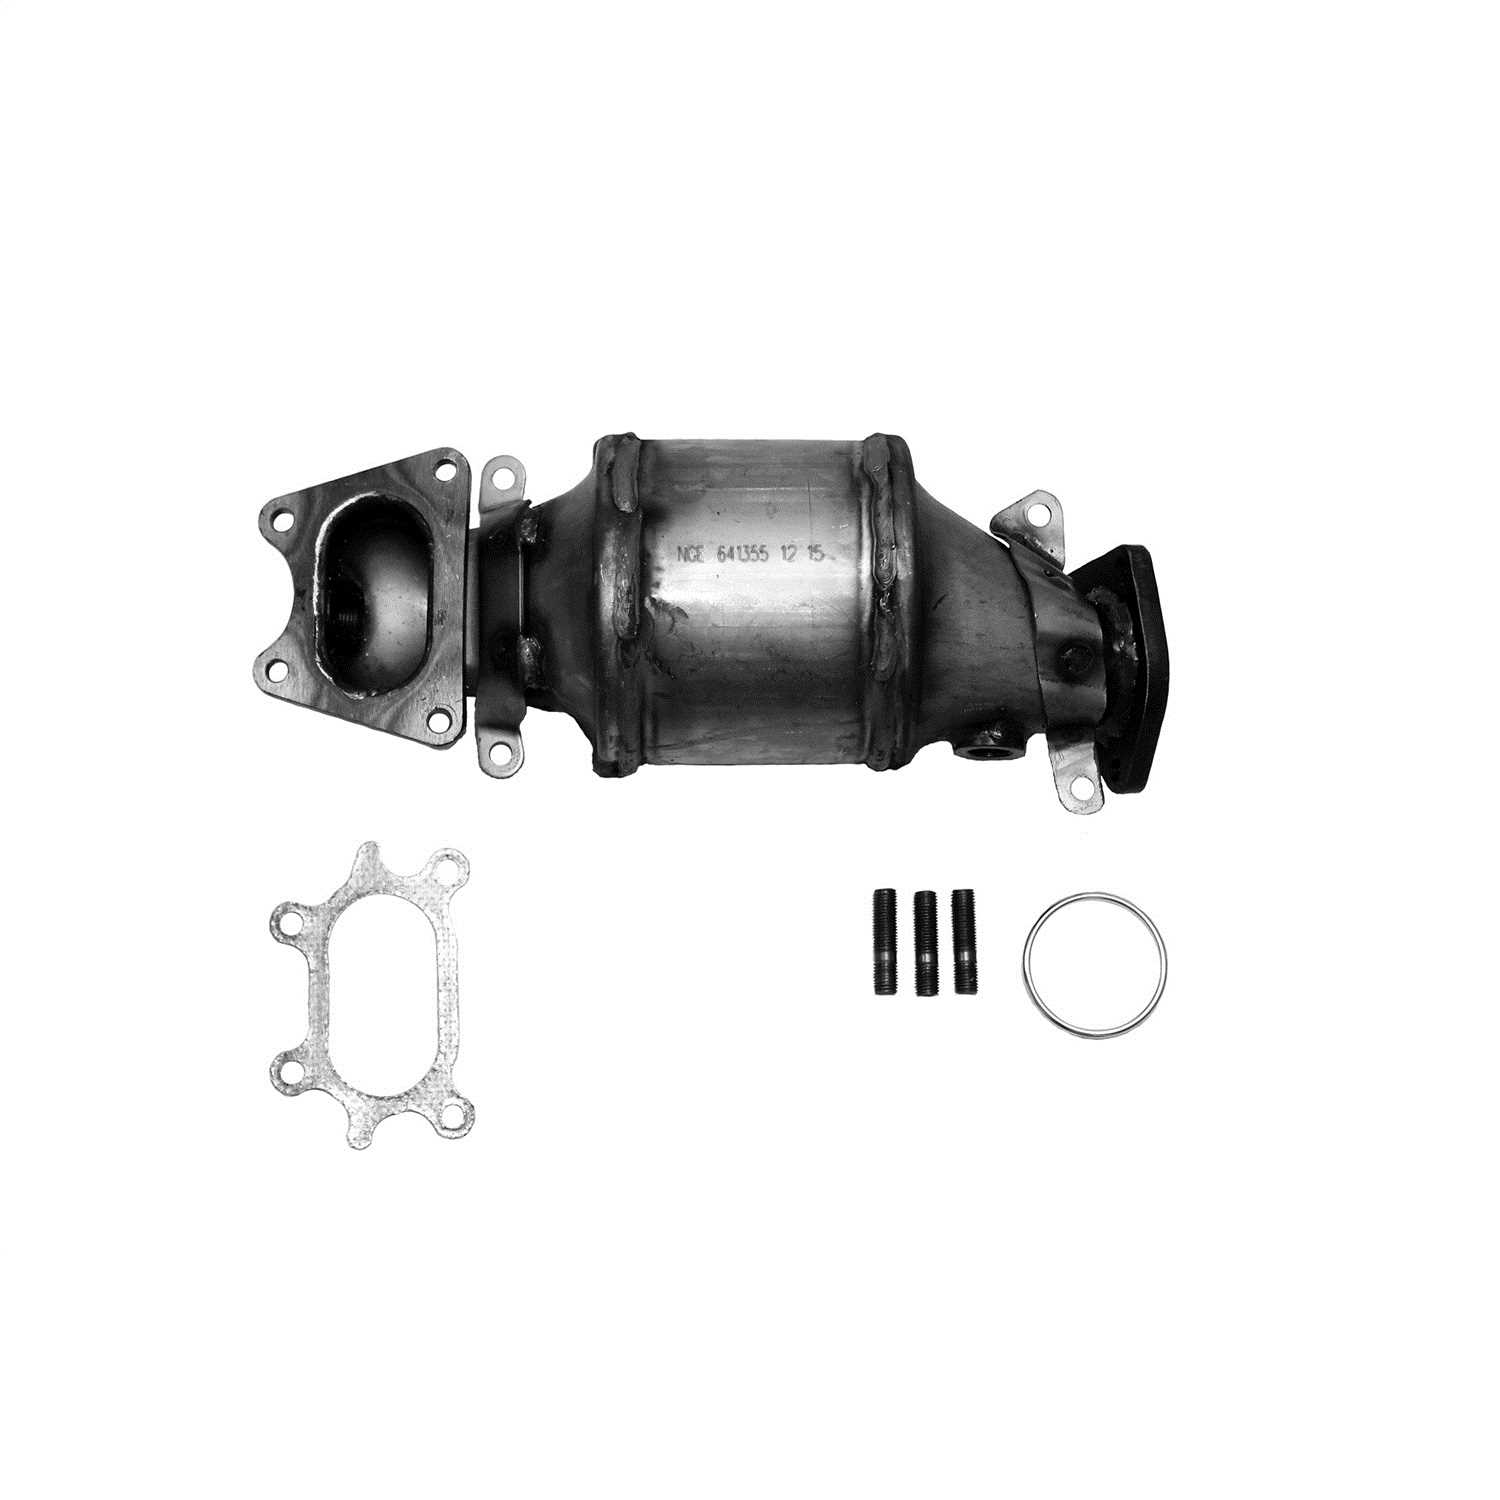 2061250 Flowmaster 49 State Catalytic Converters Direct Fit Catalytic Converter